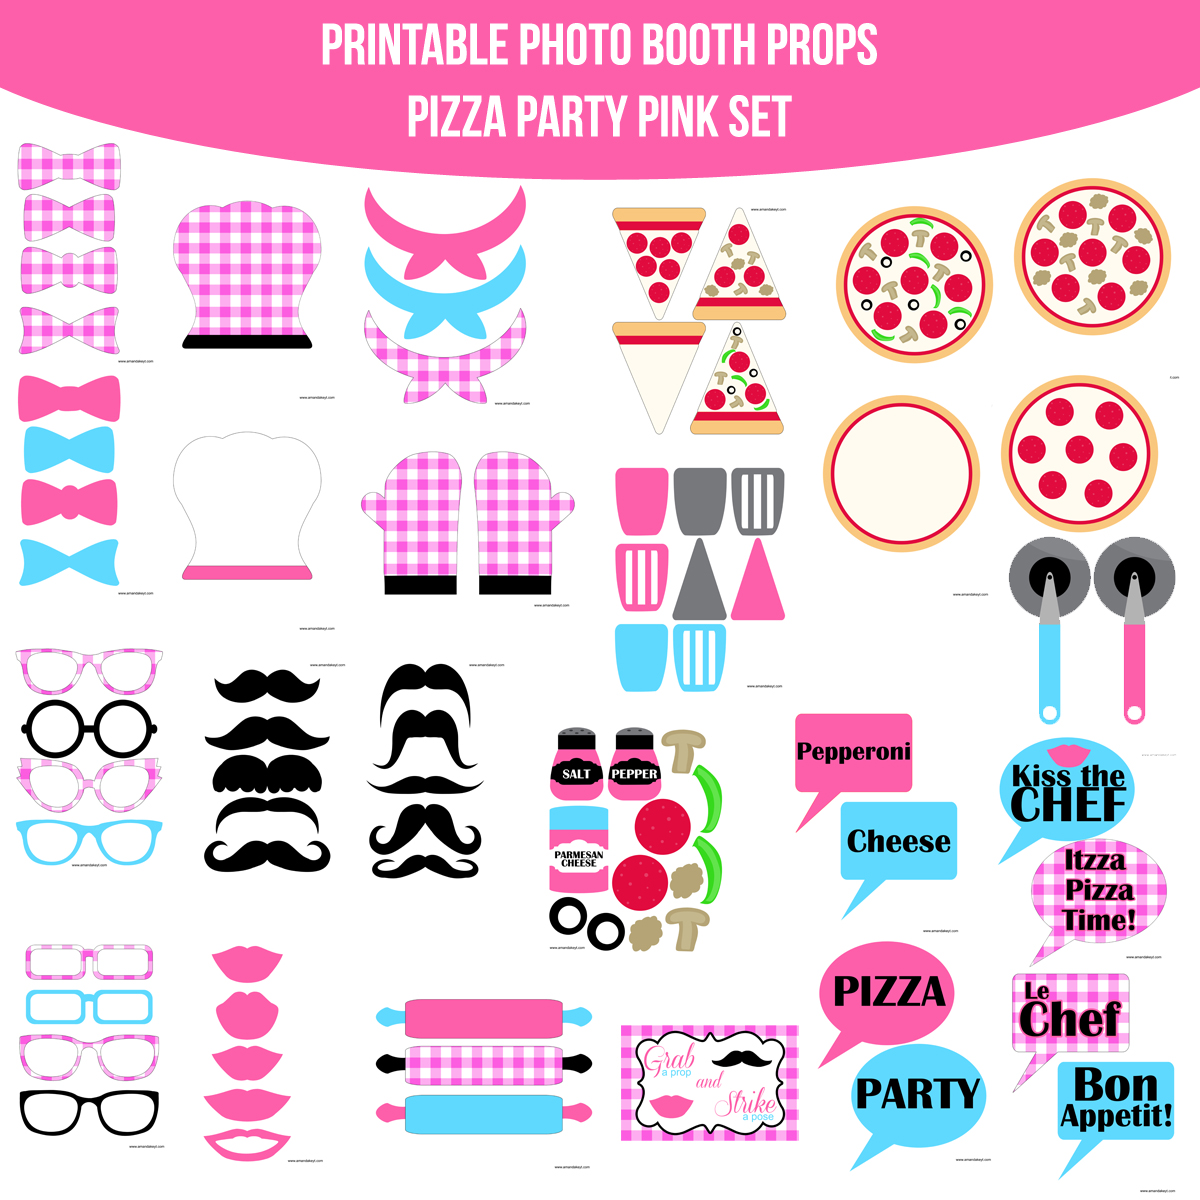 See the Set - To View The Whole Pizza Party Pink Printable Photo Booth Set Click Here